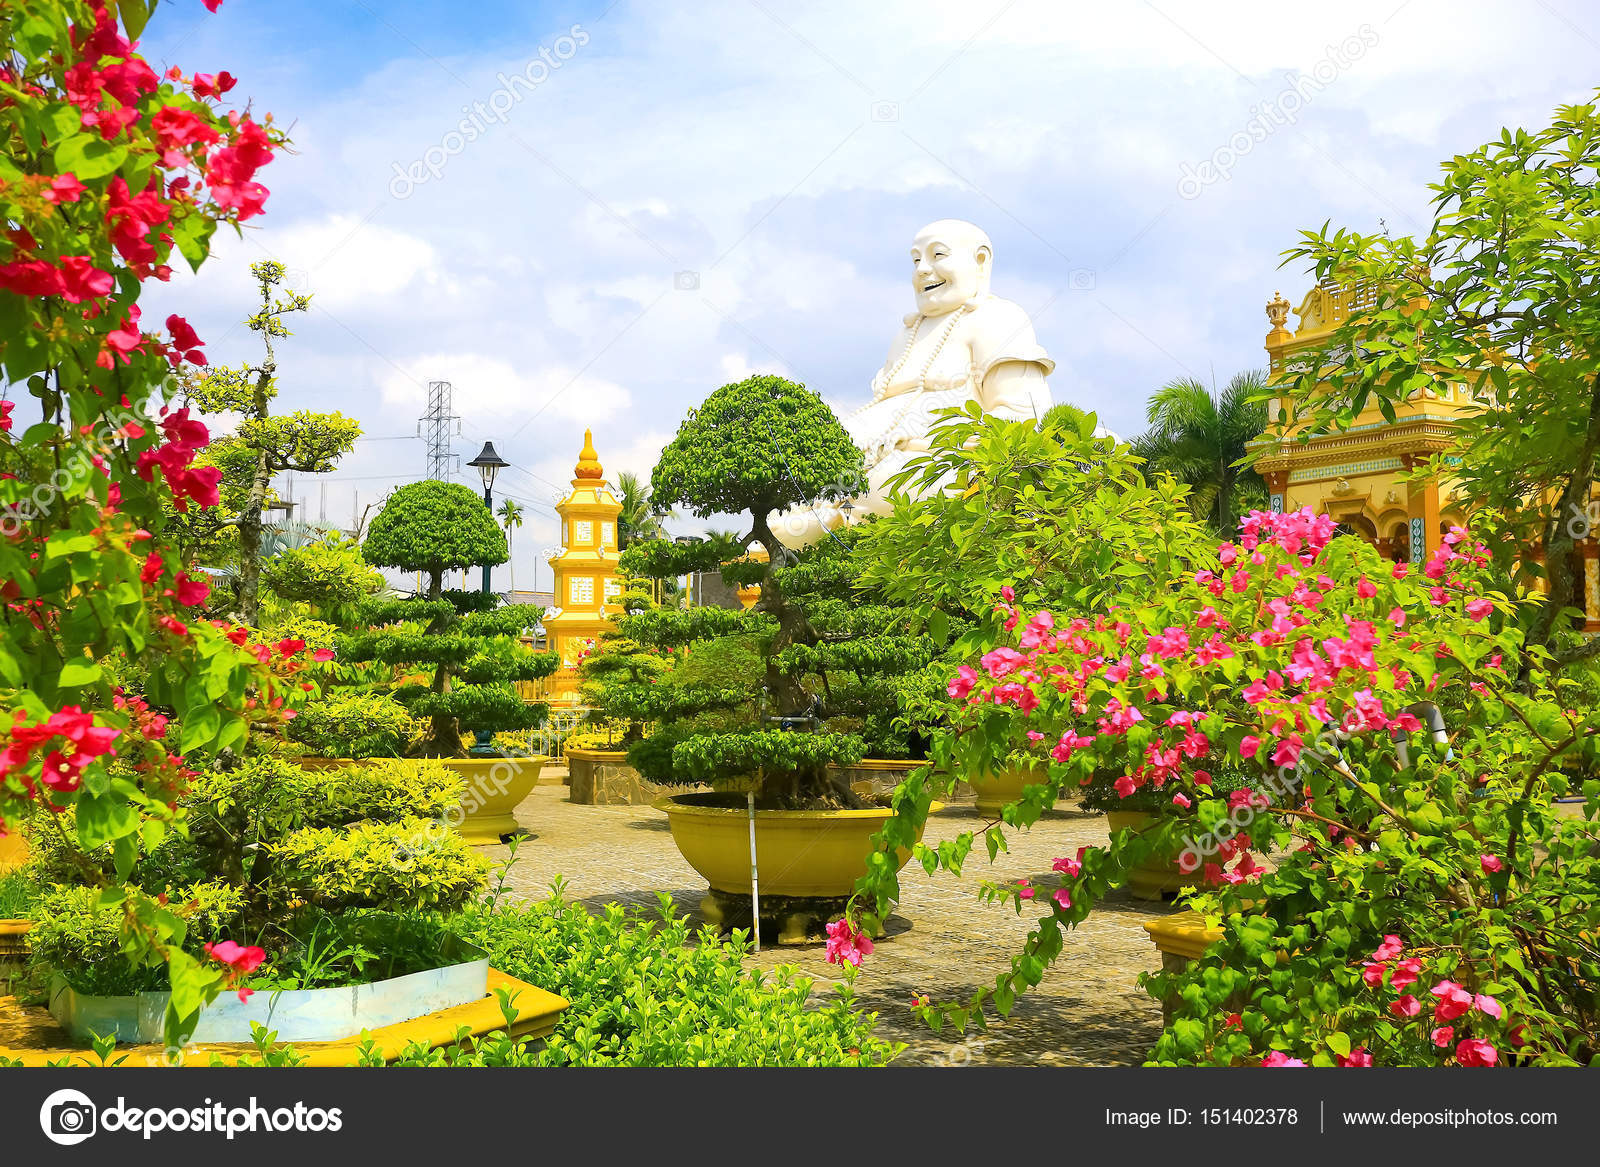 Tropical garden with flowers and trees \u2014 Stock Photo © xload